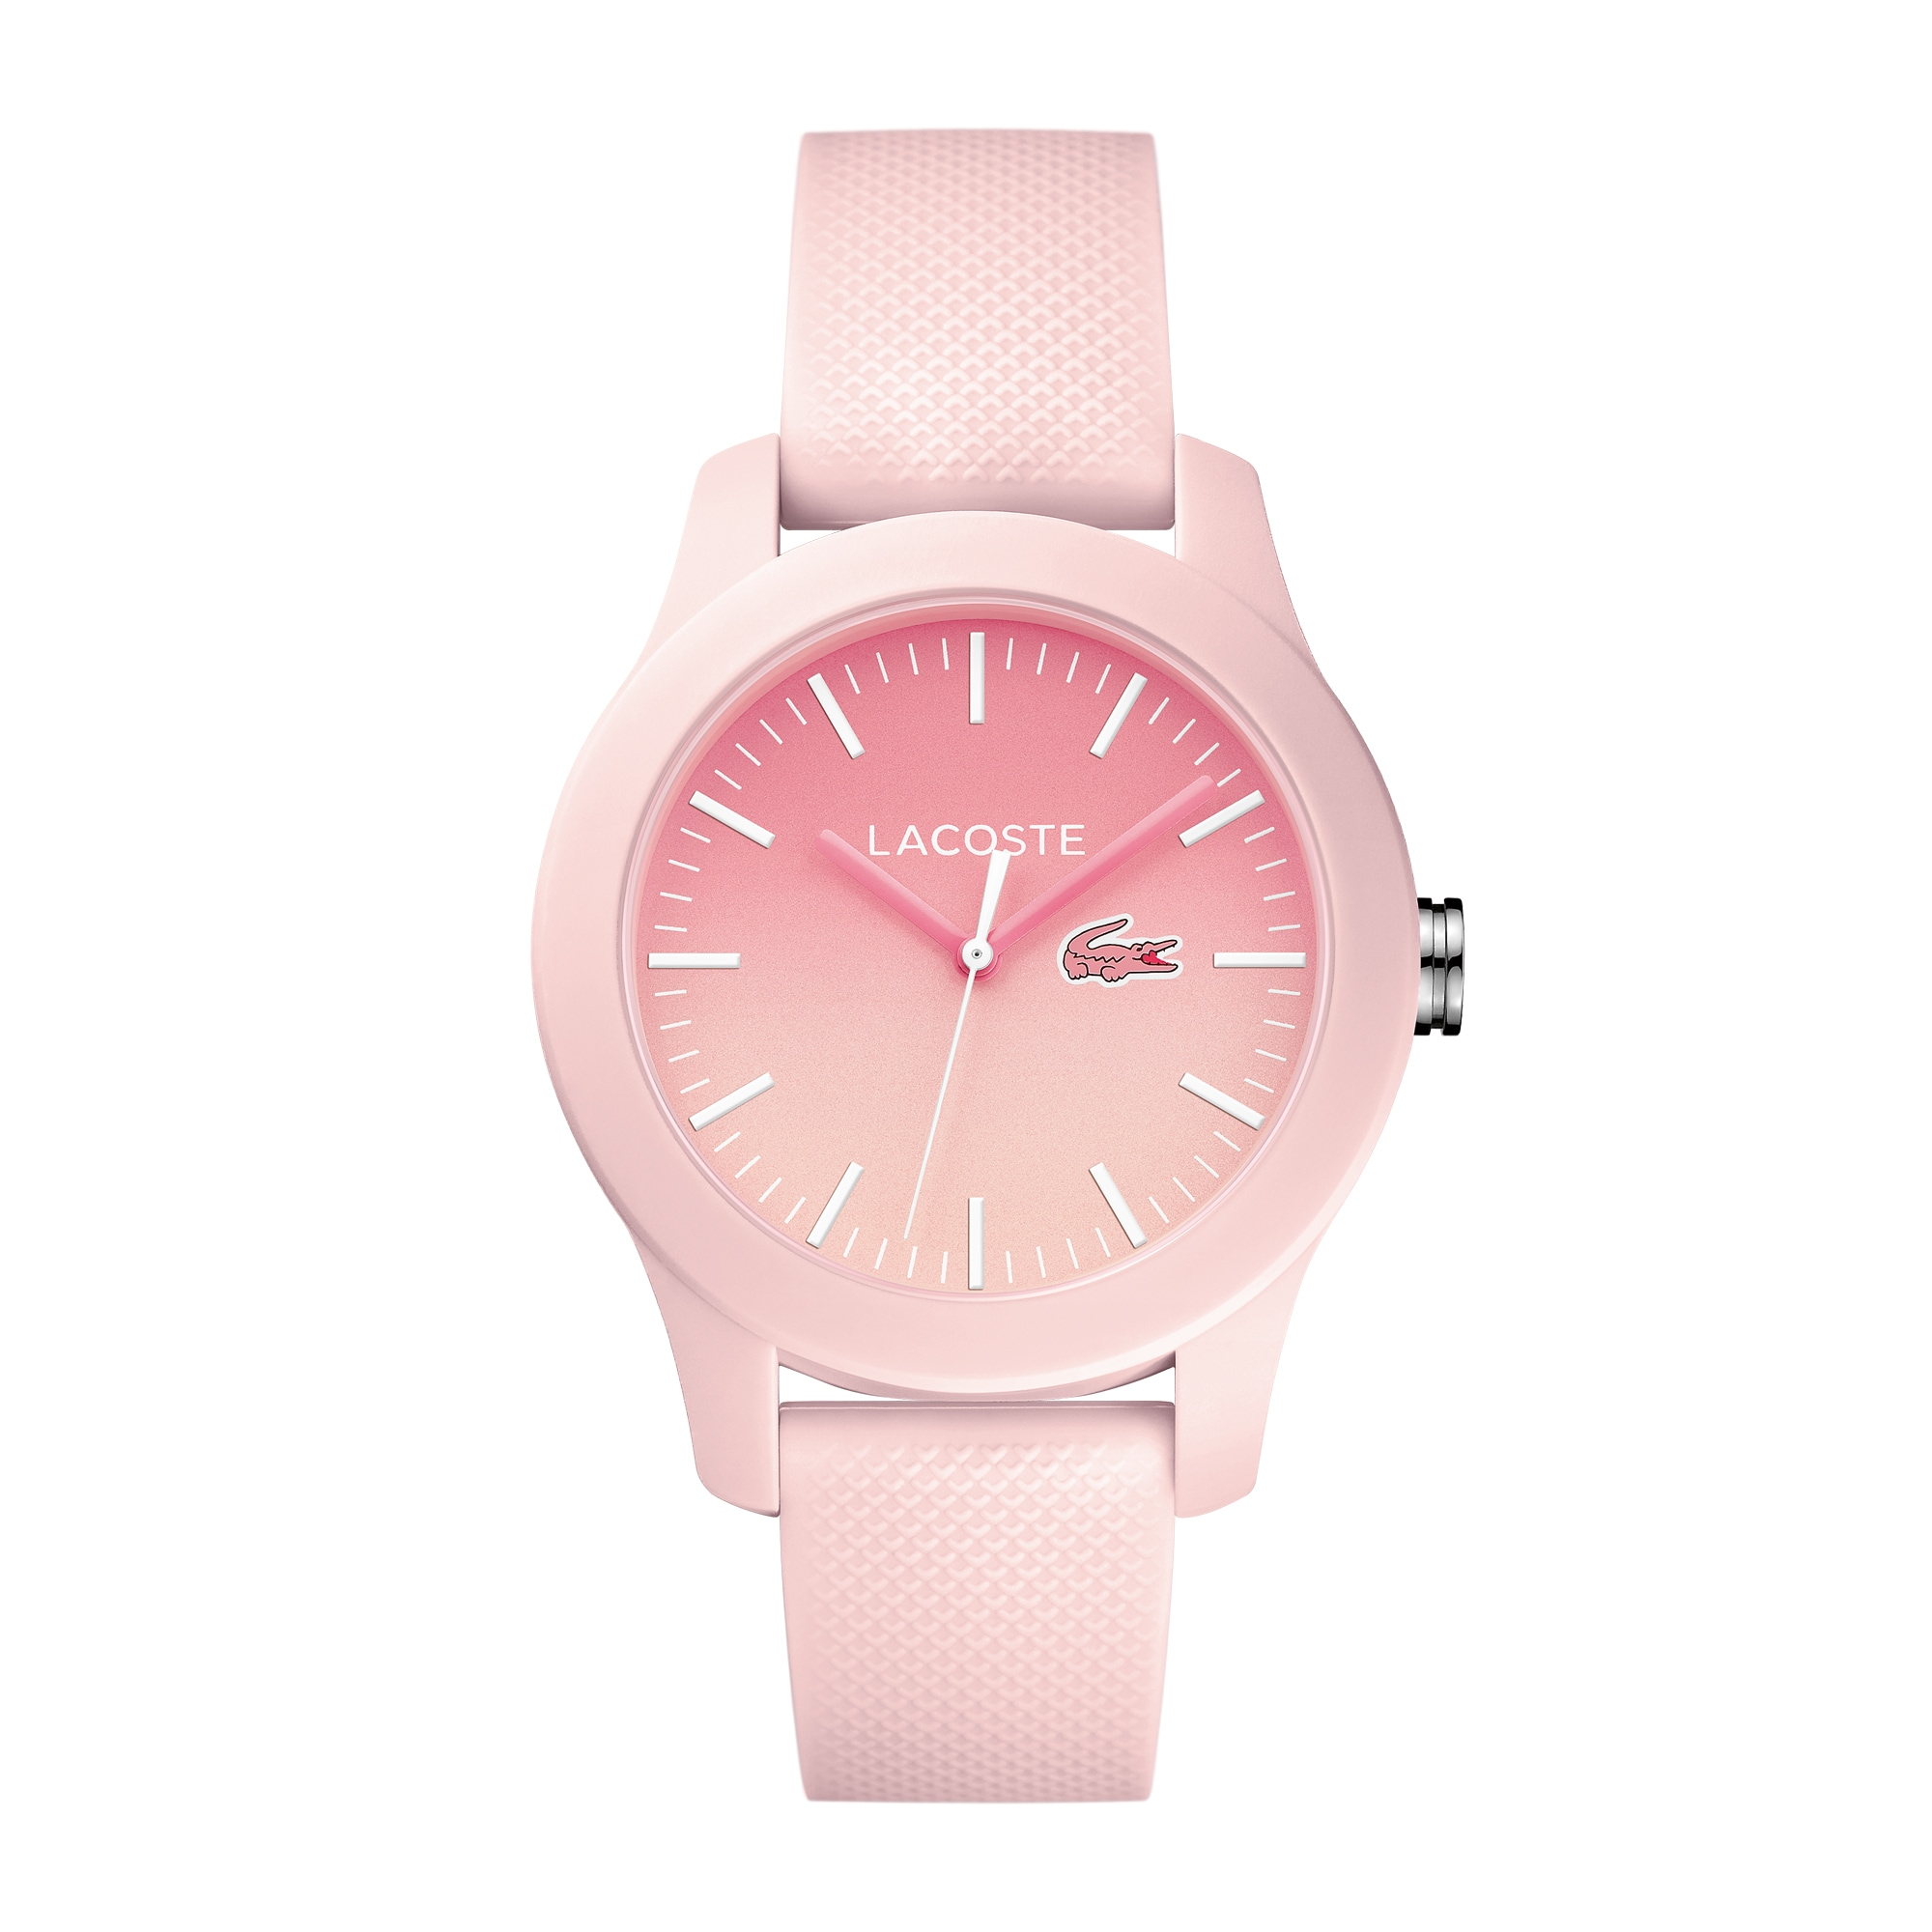 Women's Lacoste L.12.12 Watch